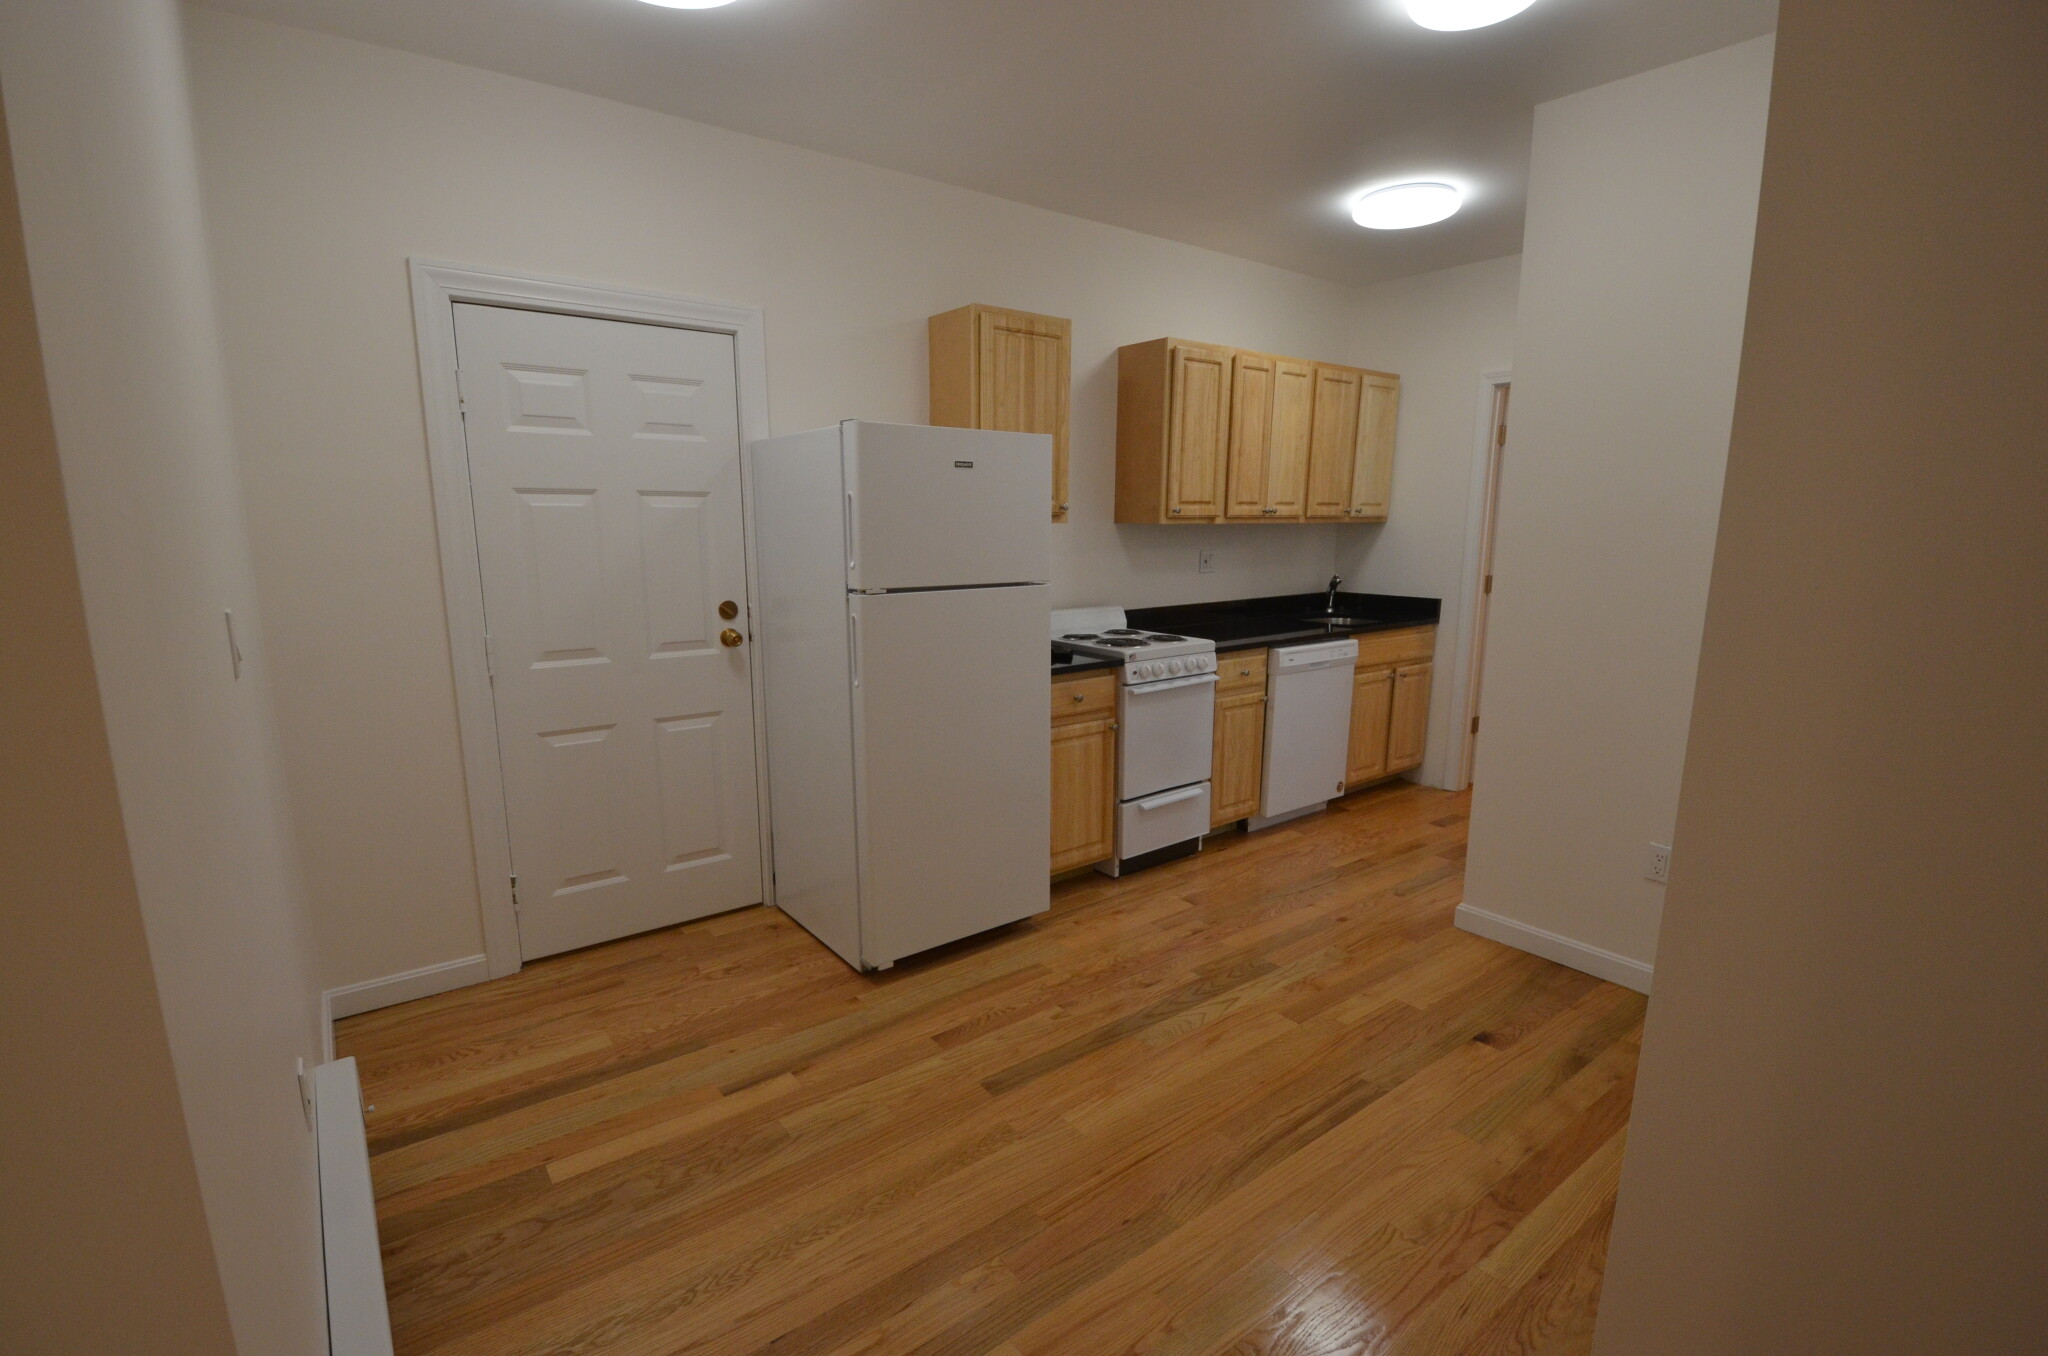 3 Beds, 1 Bath apartment in Boston for $3,400